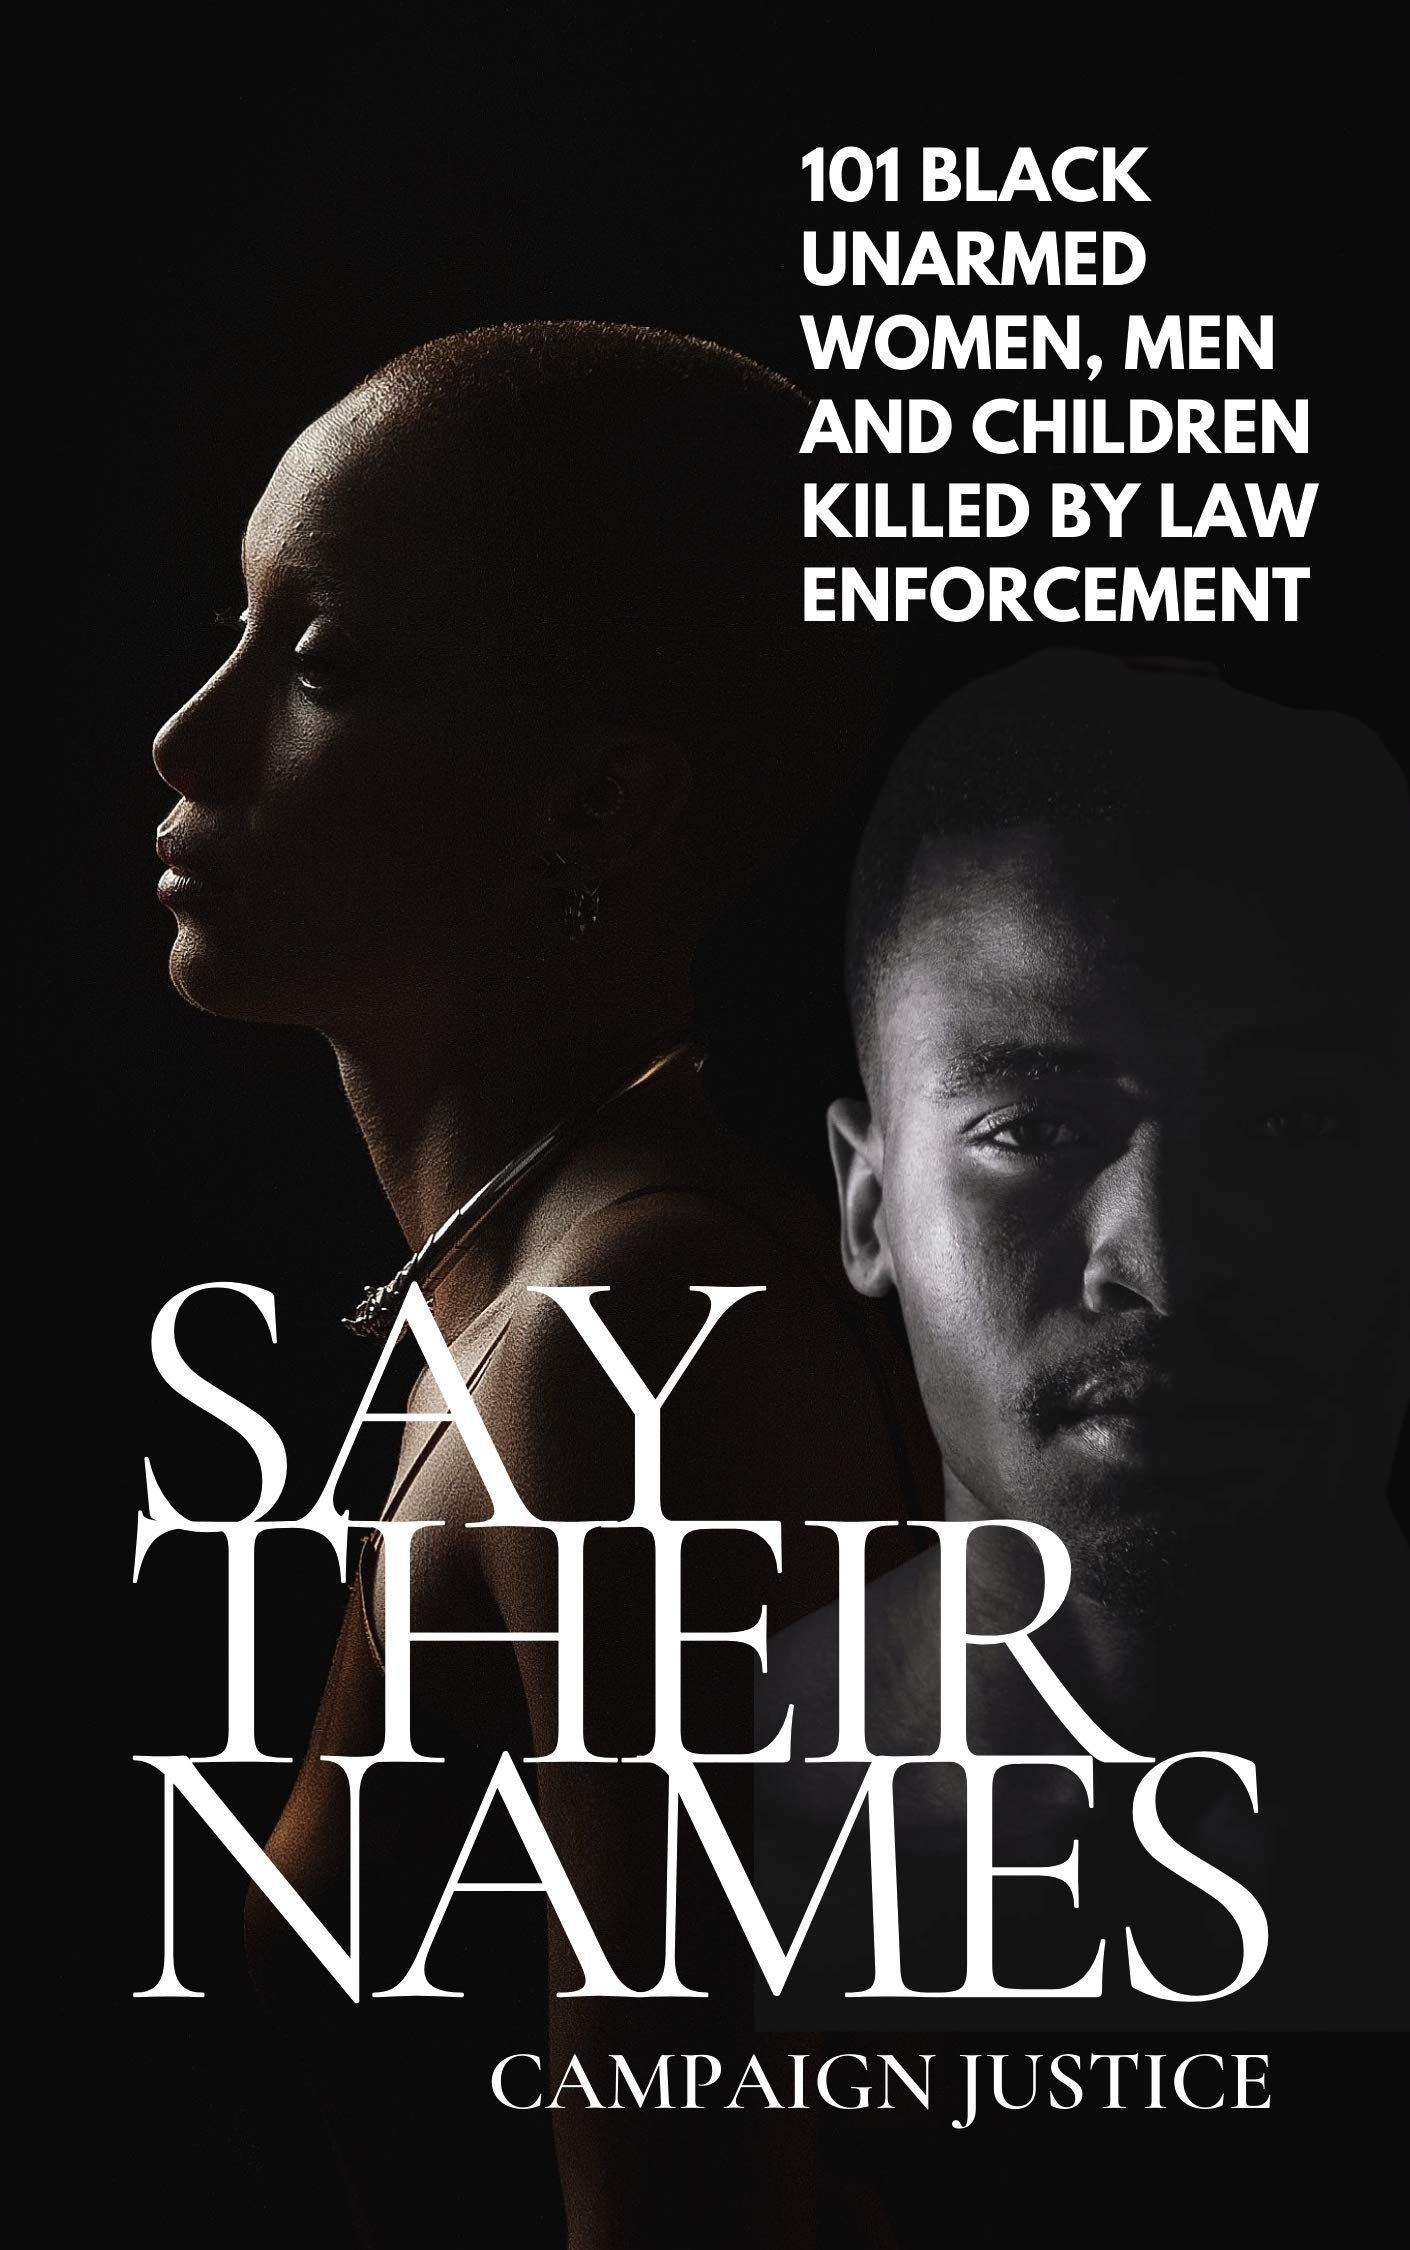 Say Their Names: 101 Black Unarmed Women, Men and Children Killed By Law Enforcement